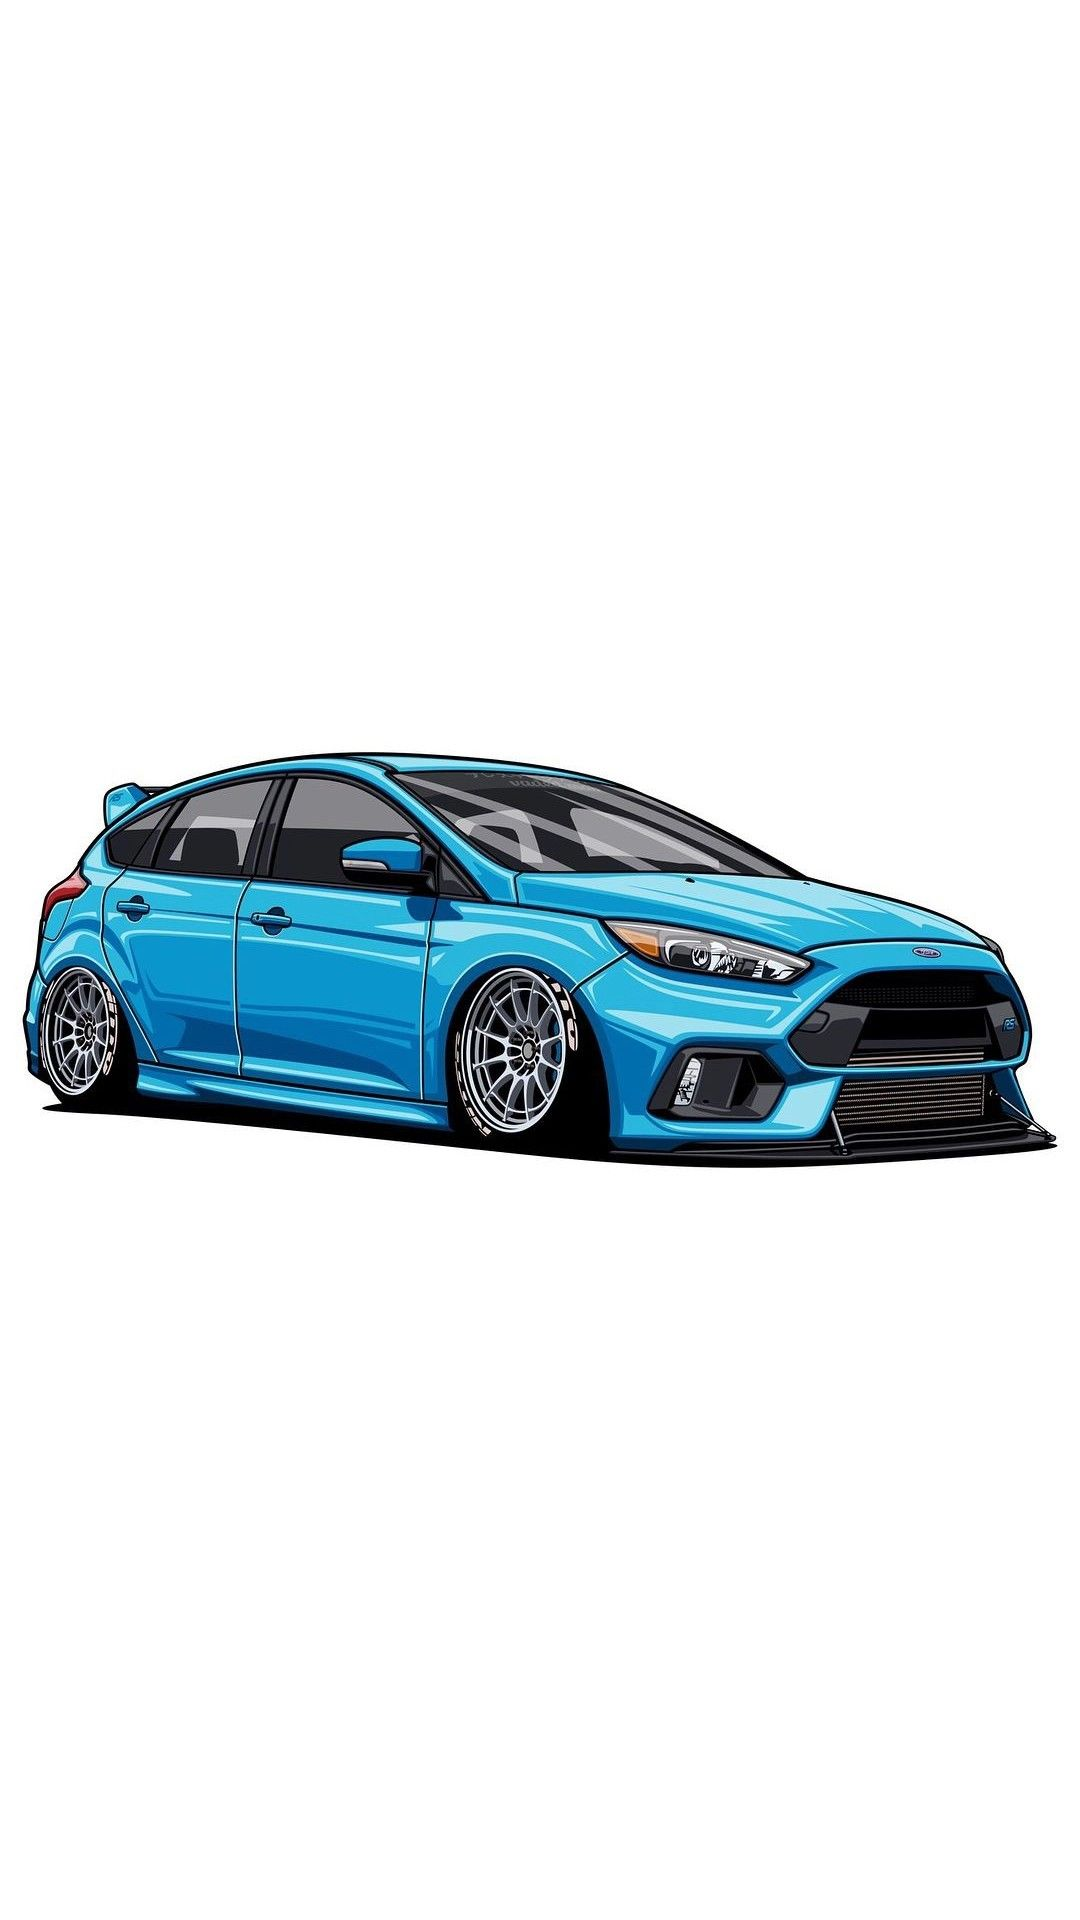 Ford Focus Rs Car Wallpapers Ford Focus Jdm Cars